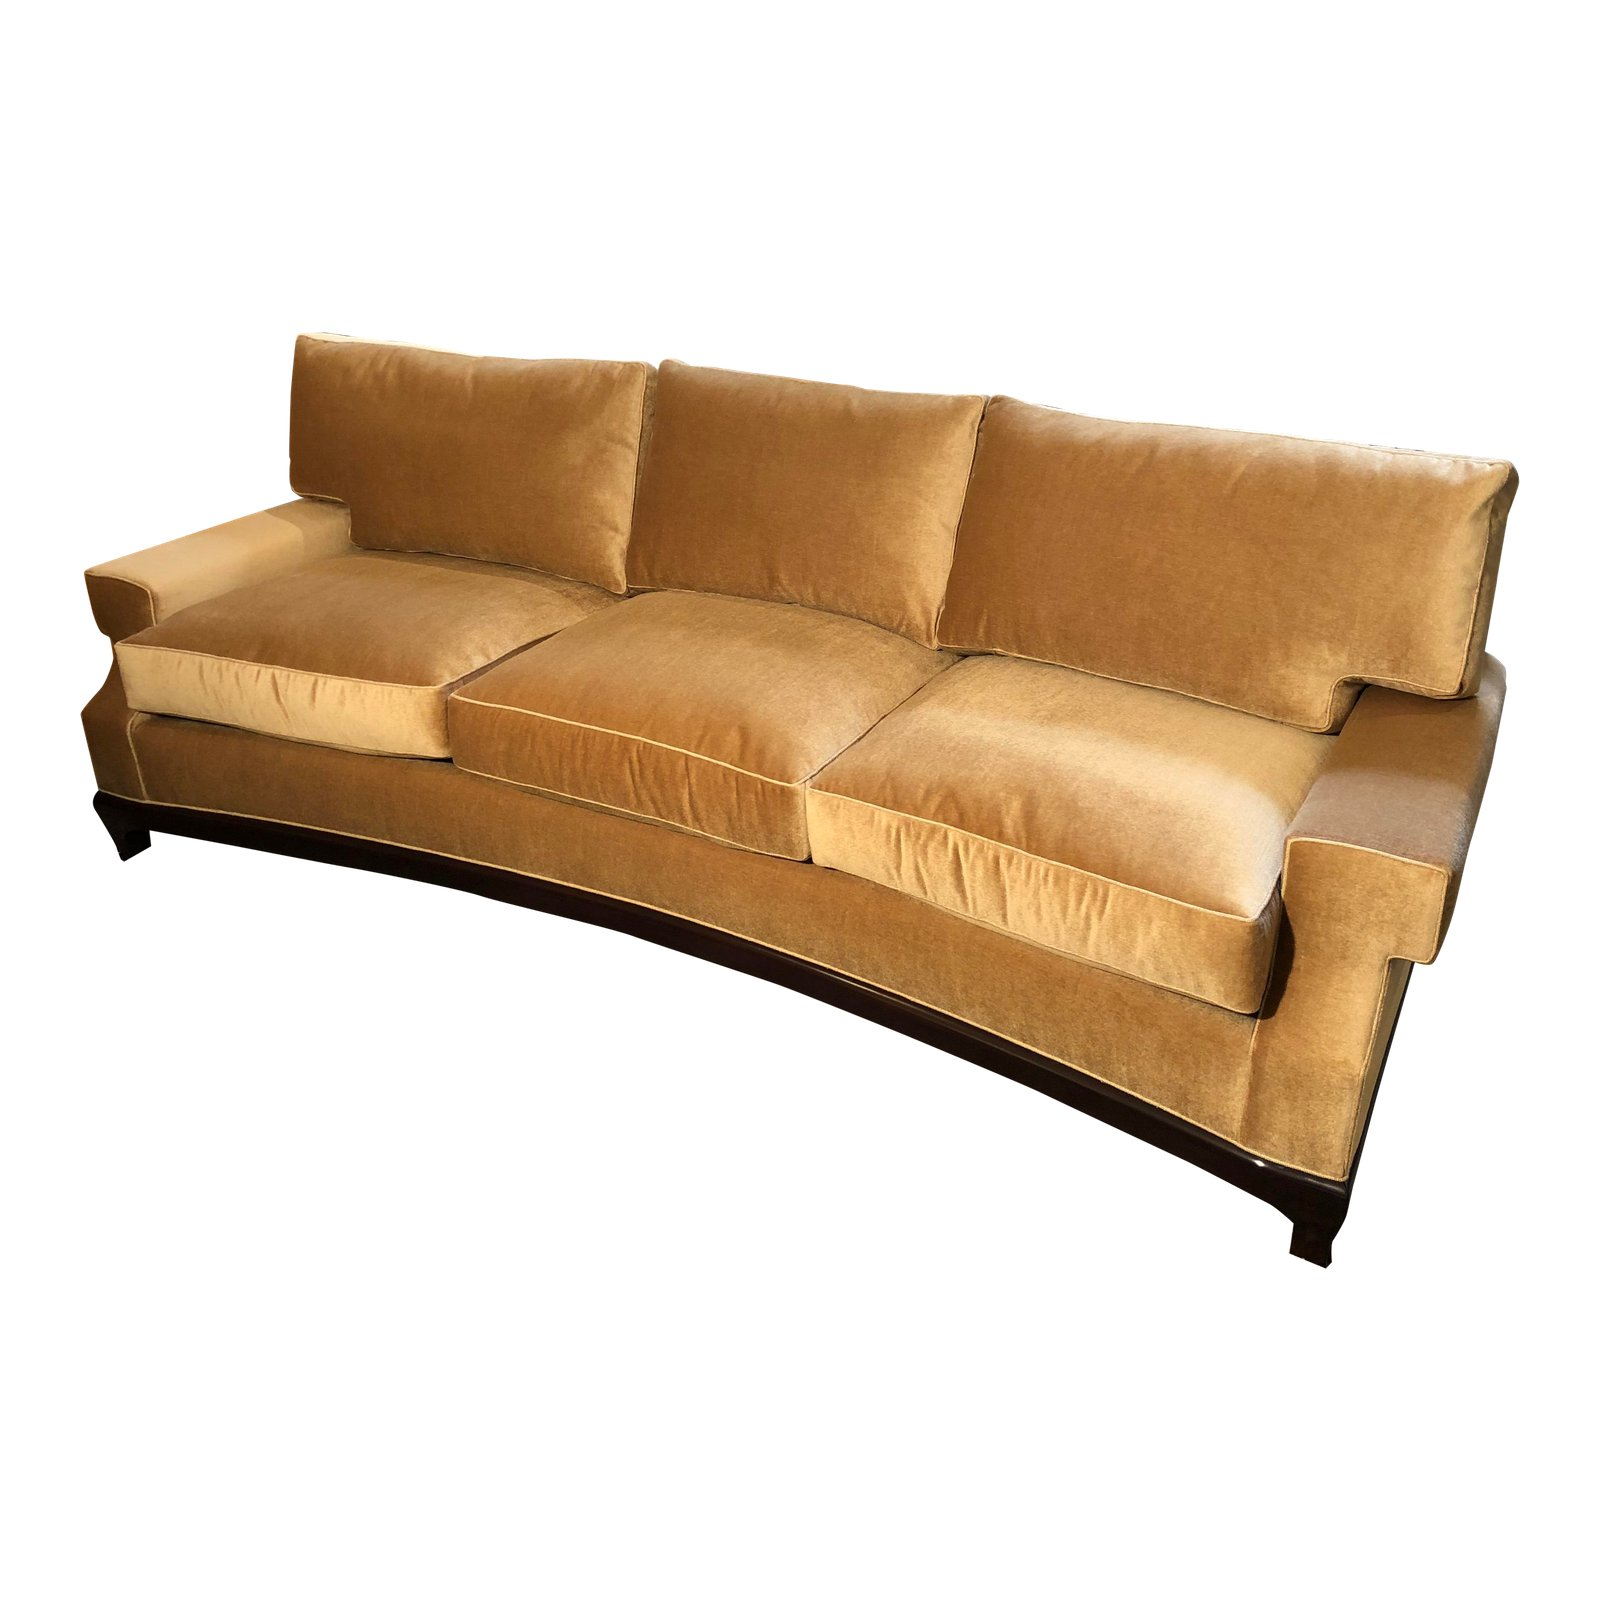 A Rudin Custom No 2519 Gold Mohair Sofa Original Price 12 000 00